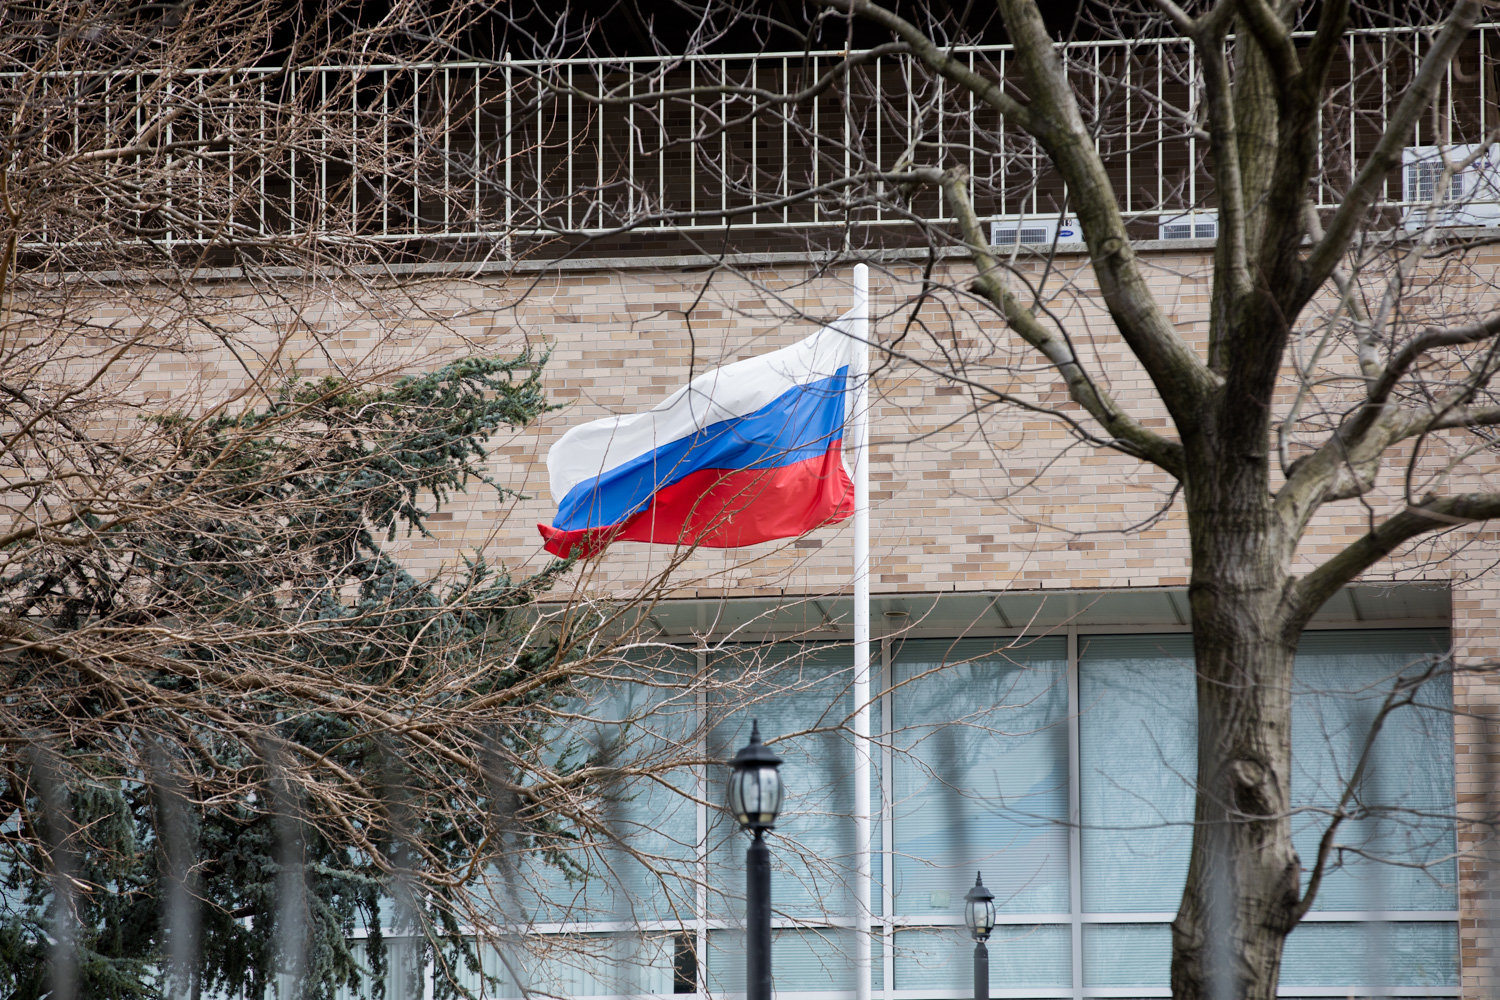 The Russian flag waves in the wind in front of the Russian Mission on Mosholu Avenue.